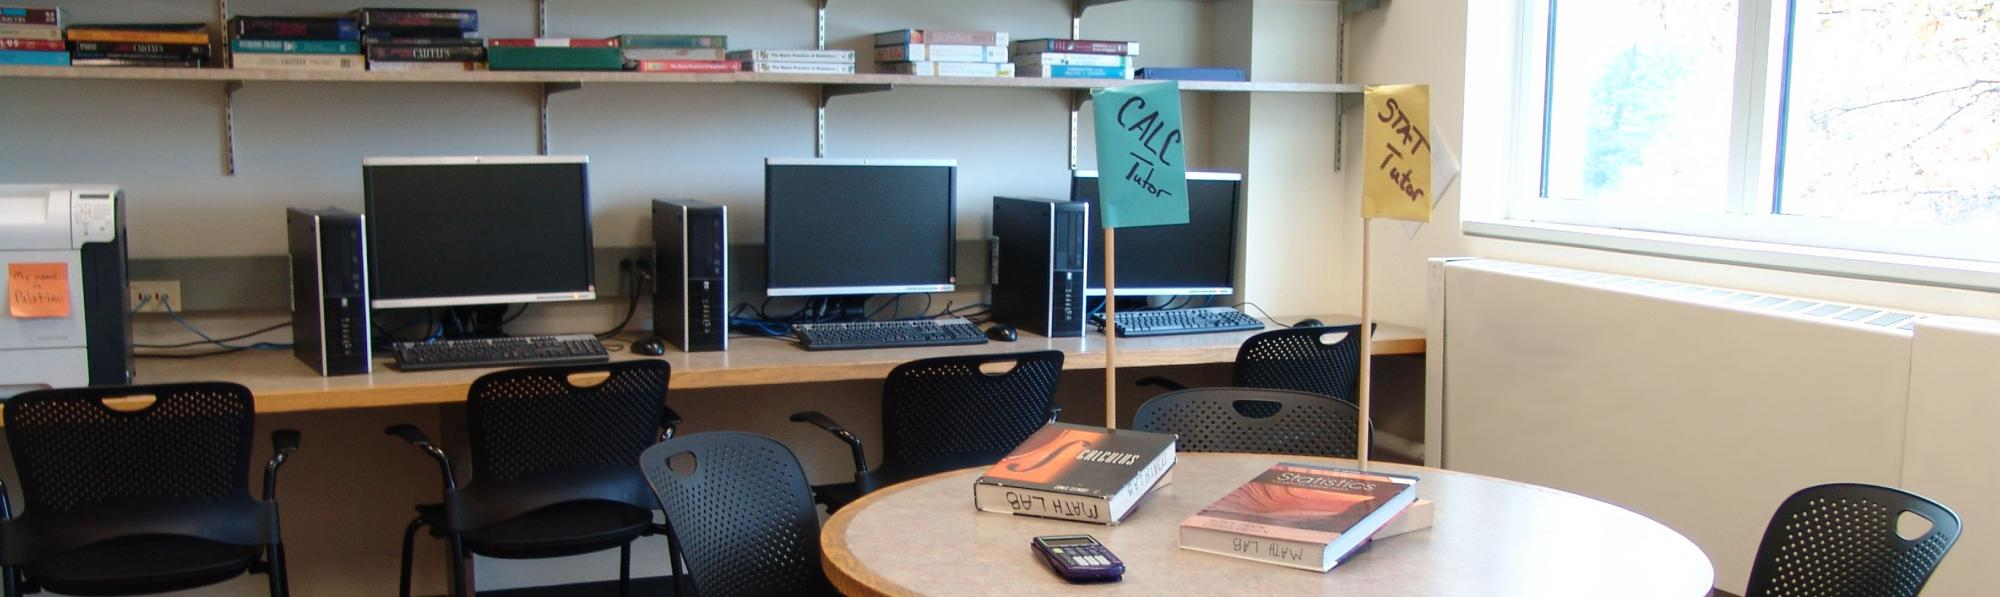 Part of the Math Lab showing a small group table with textbooks and a calculator, some computers, and the flags identifying the current Math tutor and Stats tutor.